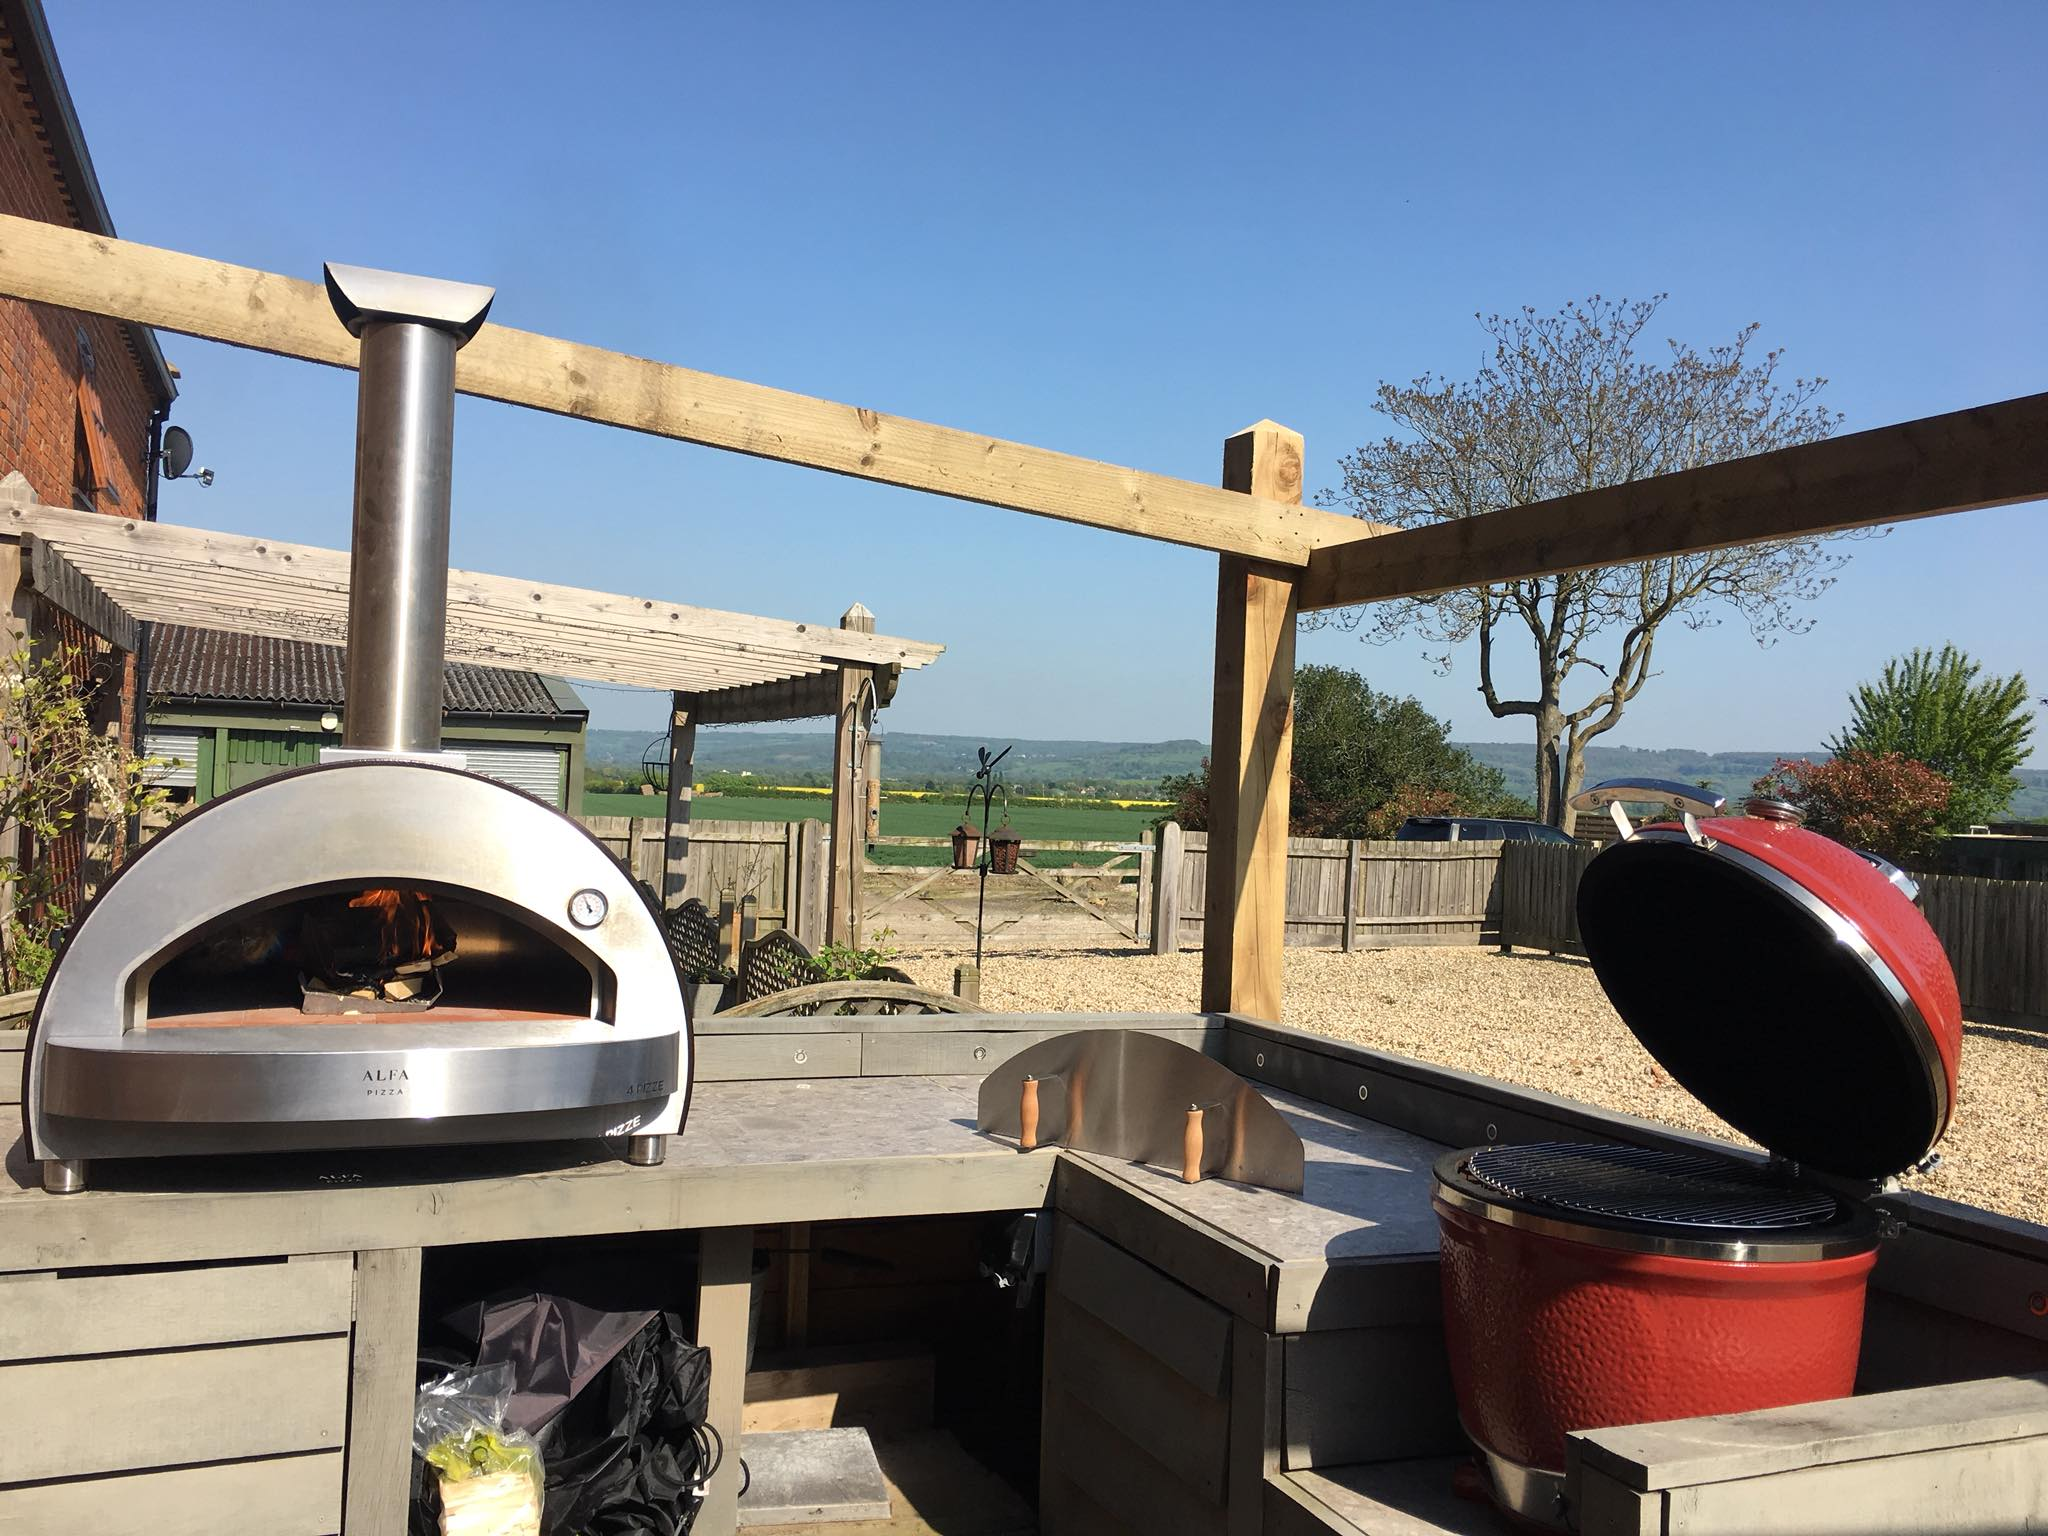 4-pizze-top-wood-fired-pizza-oven